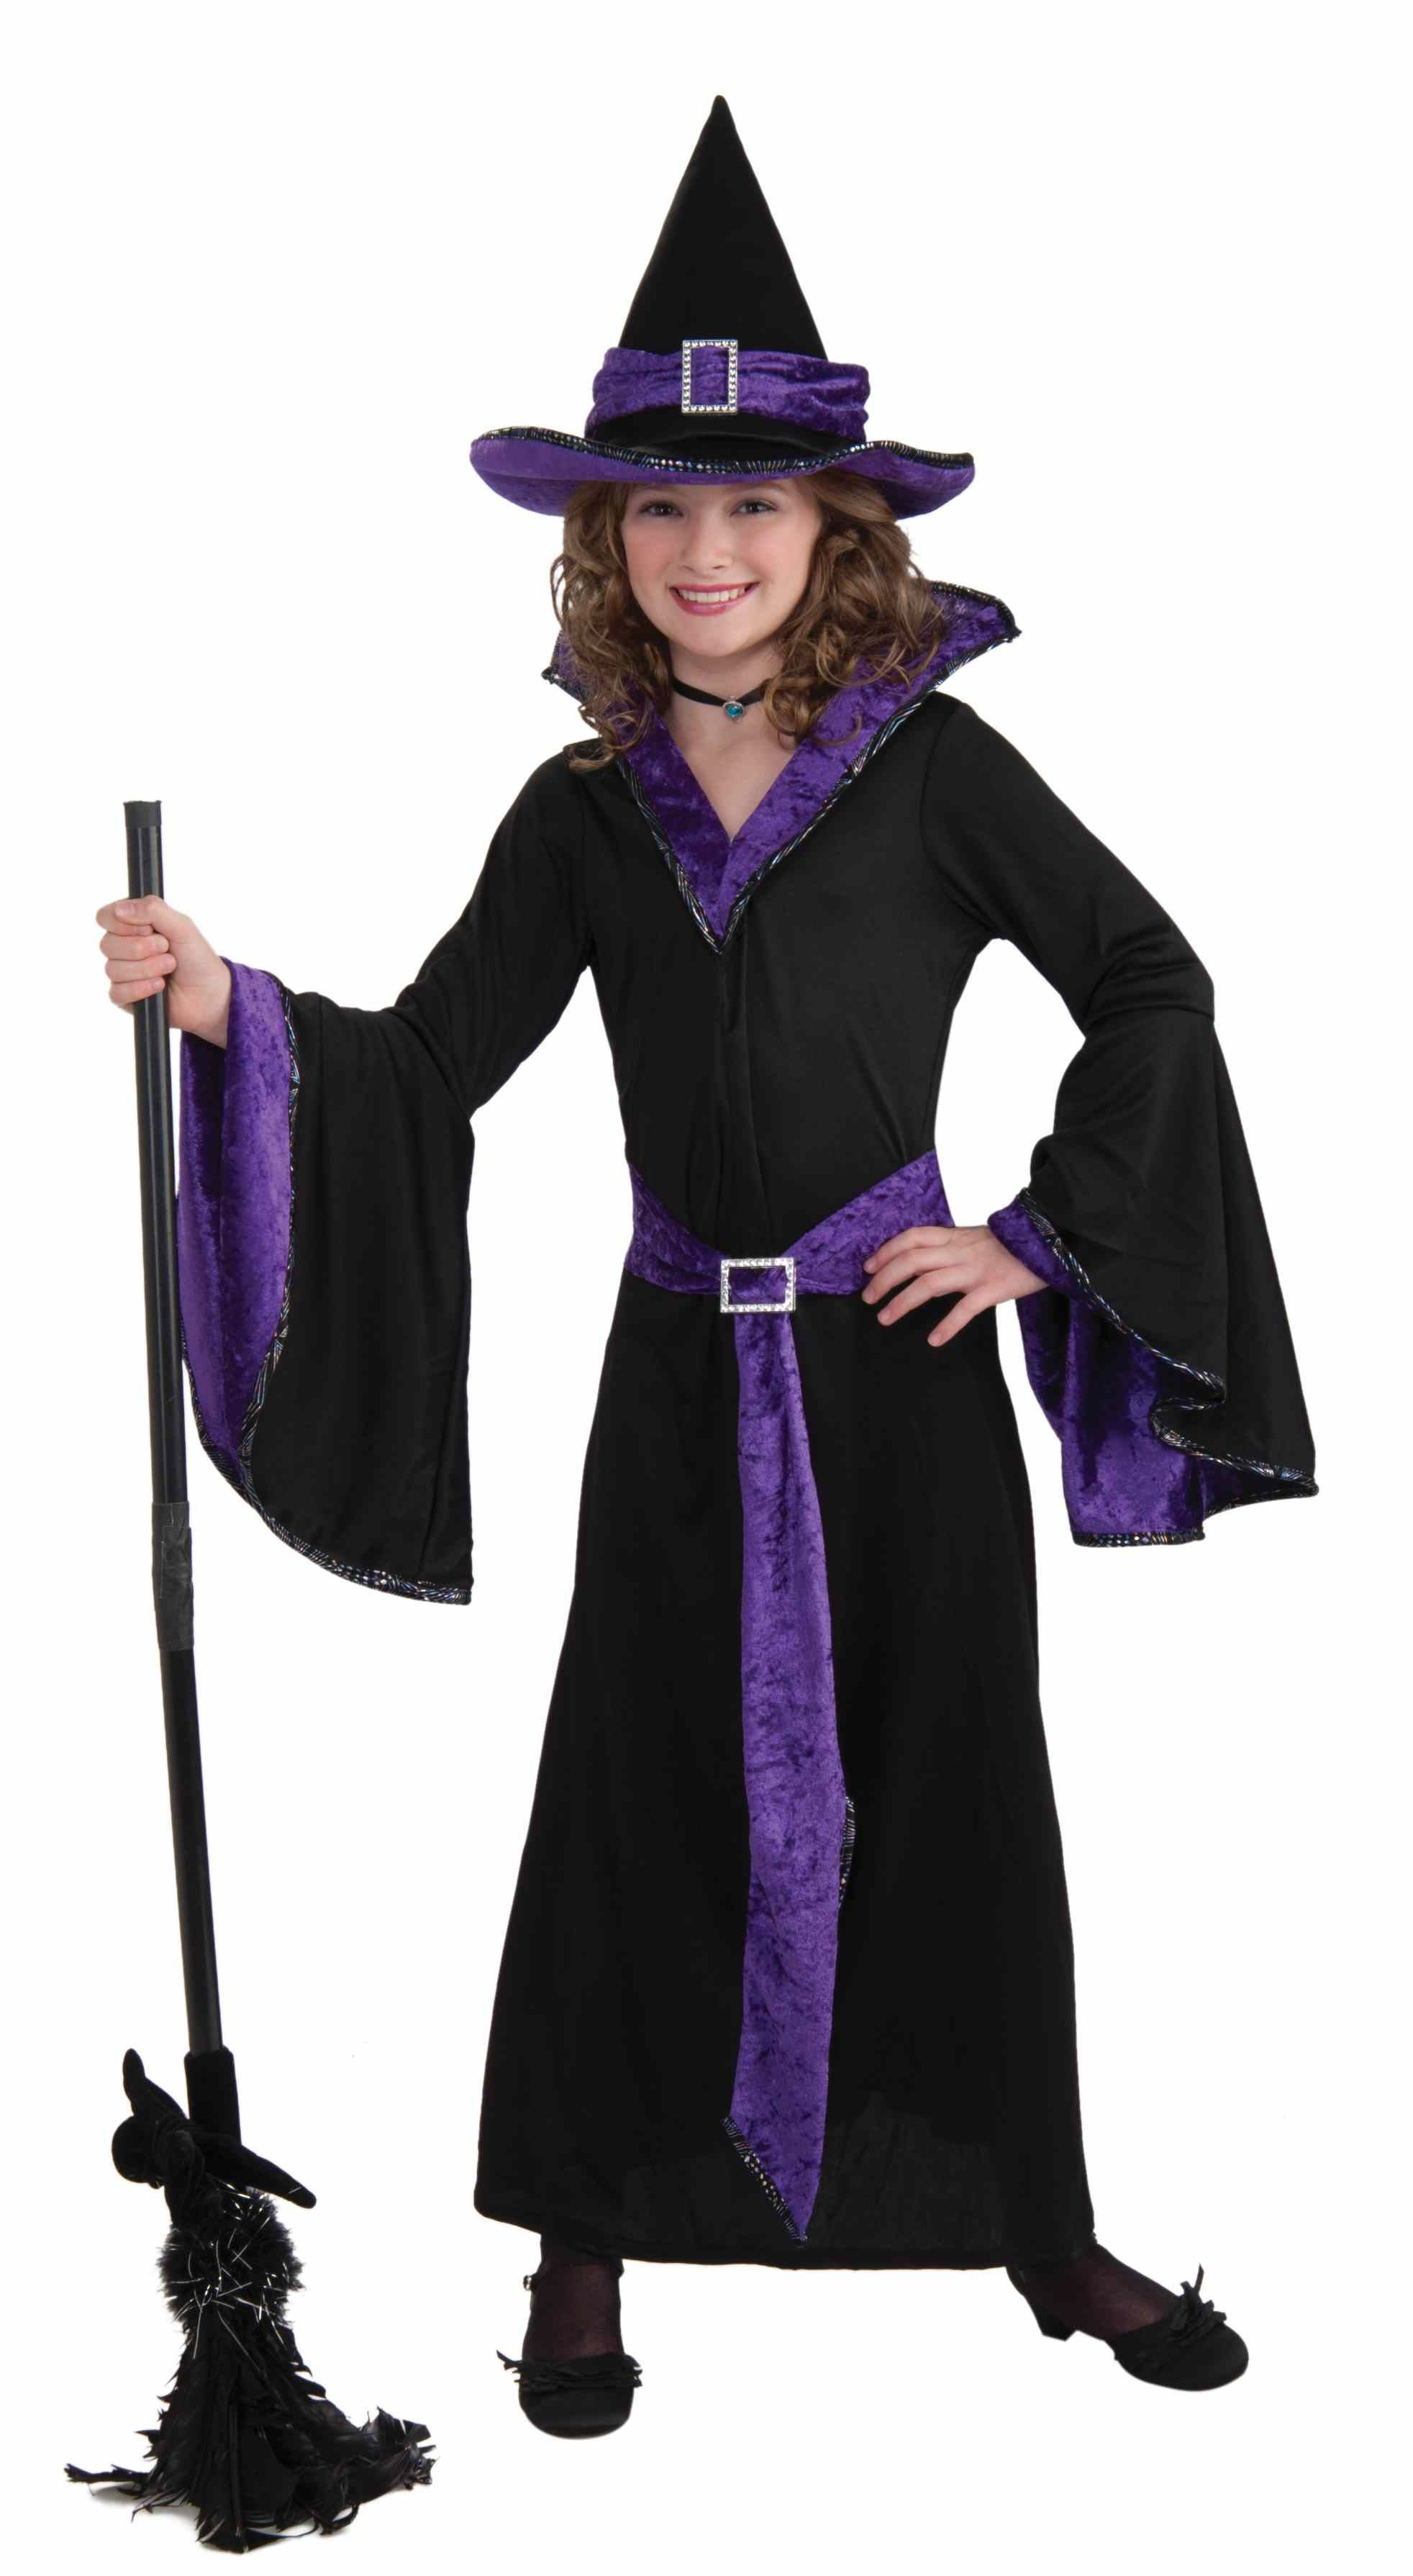 Kids Hocus Pocus Girls Witch Costume | $17.99 | The Costume Land